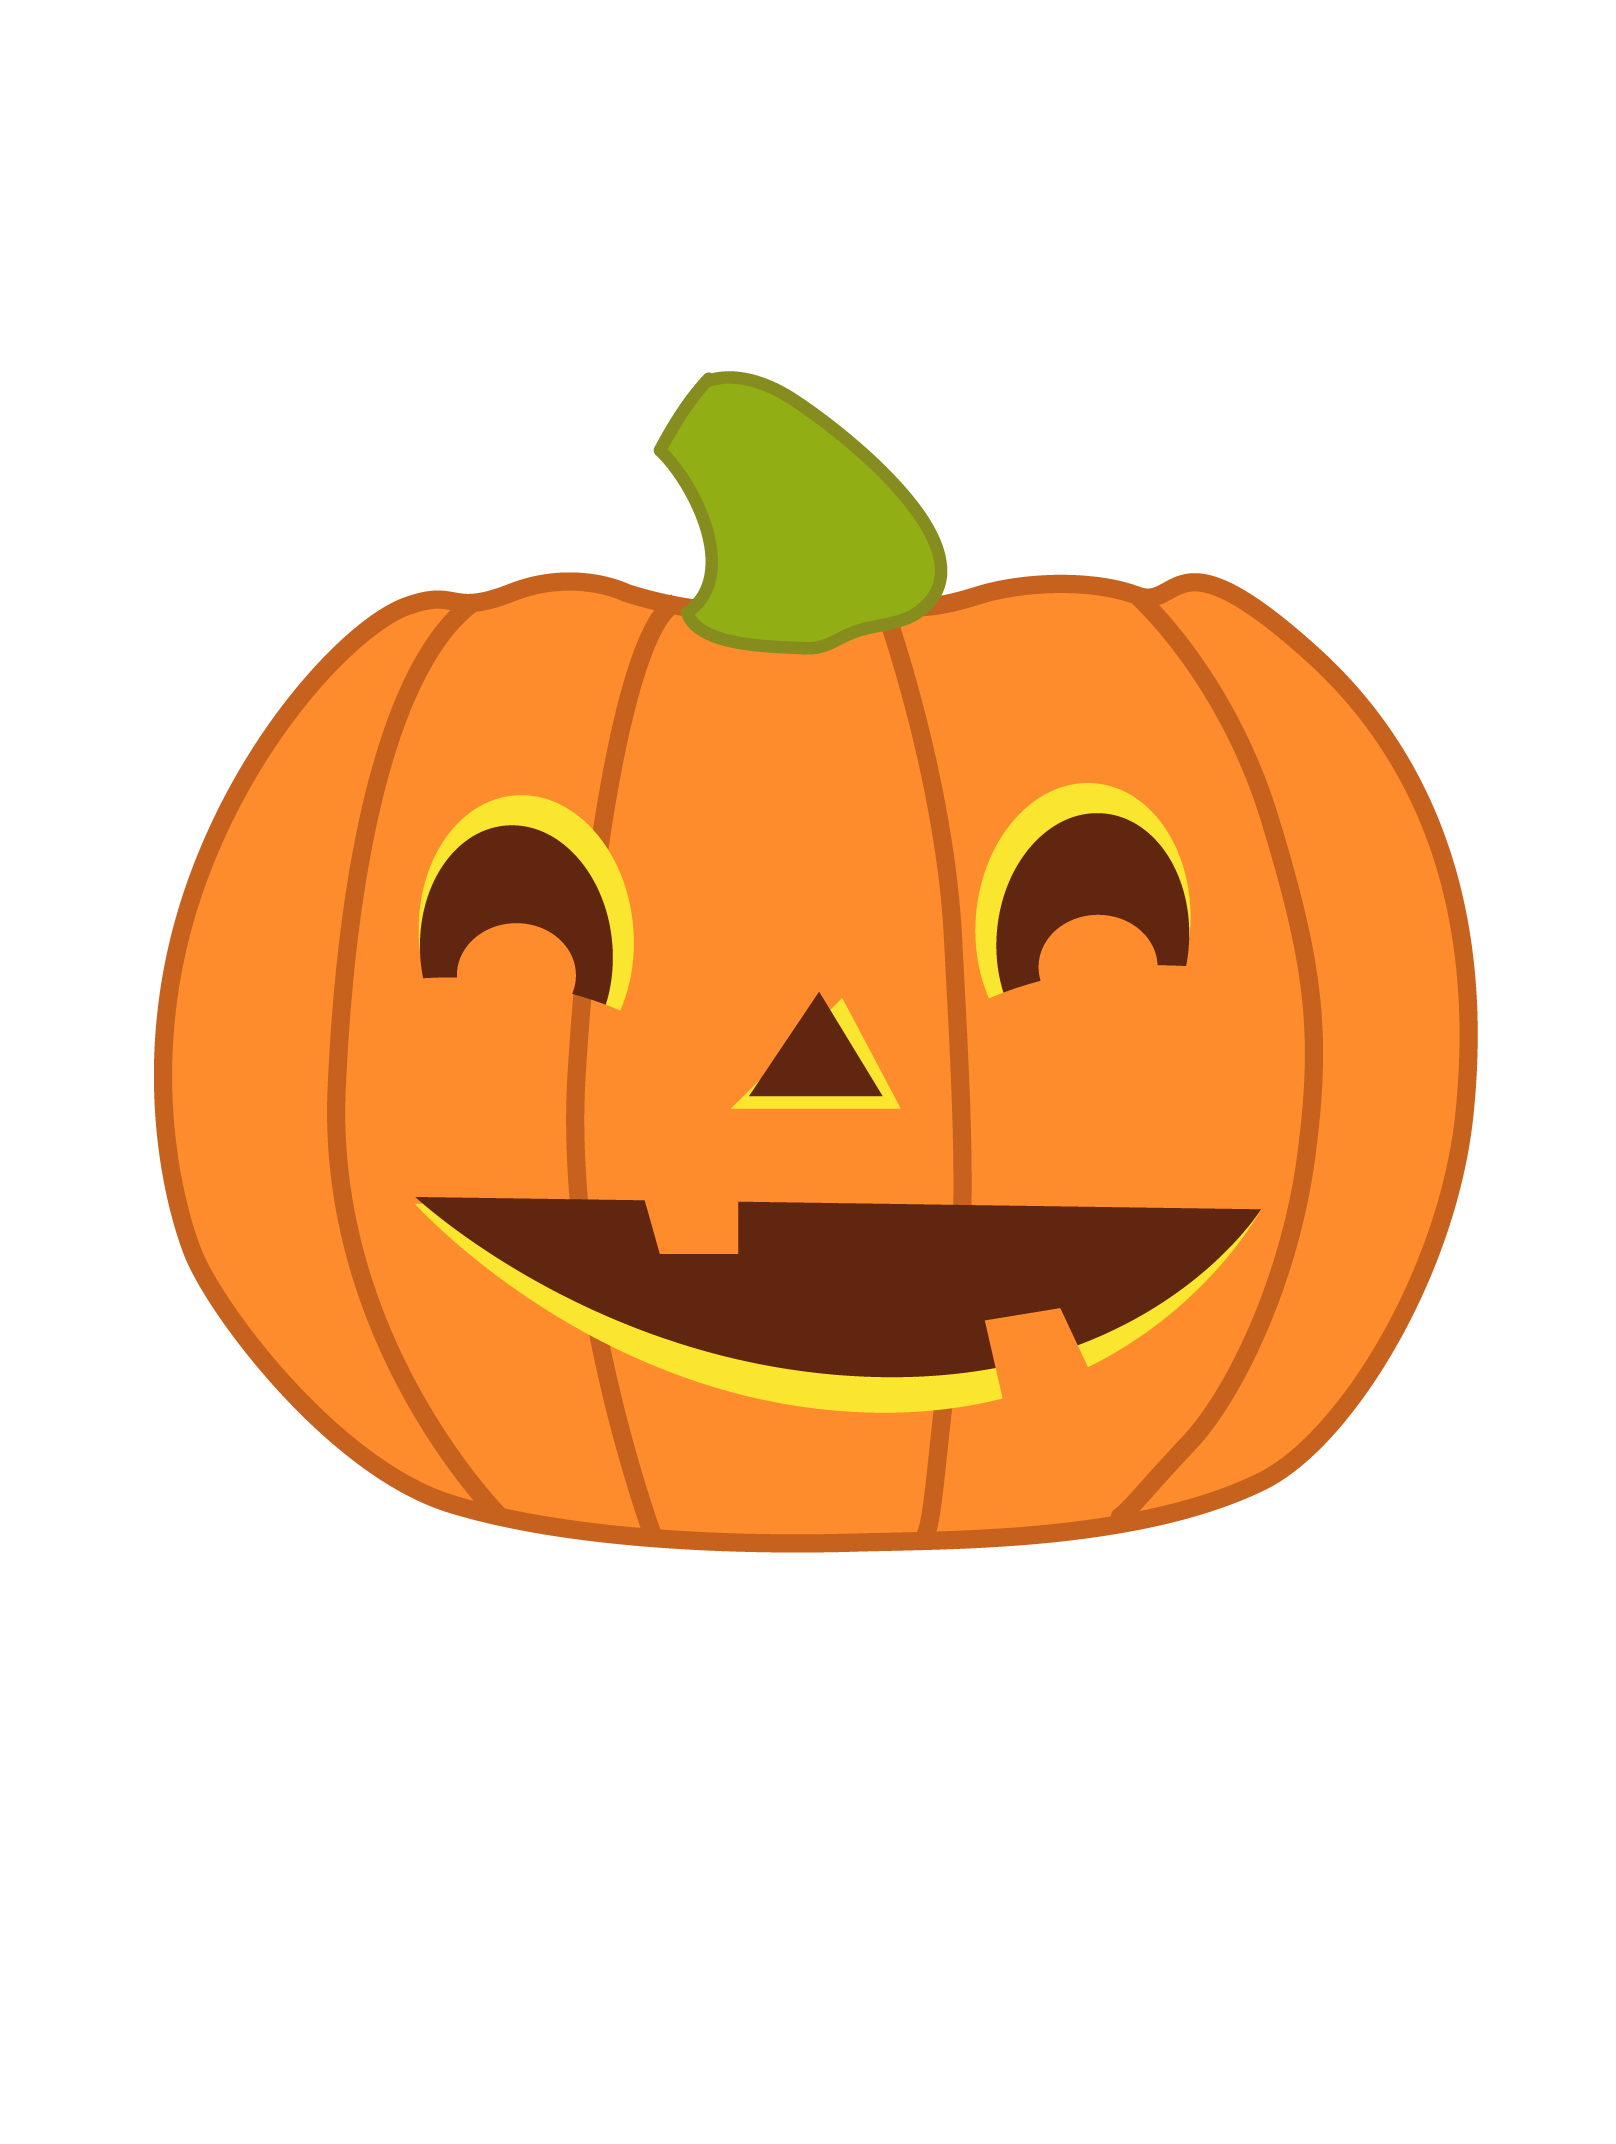 Decorative pumpkin clipart library cute halloween pumpkin clipart - Google Search | Library-Clipart ... library